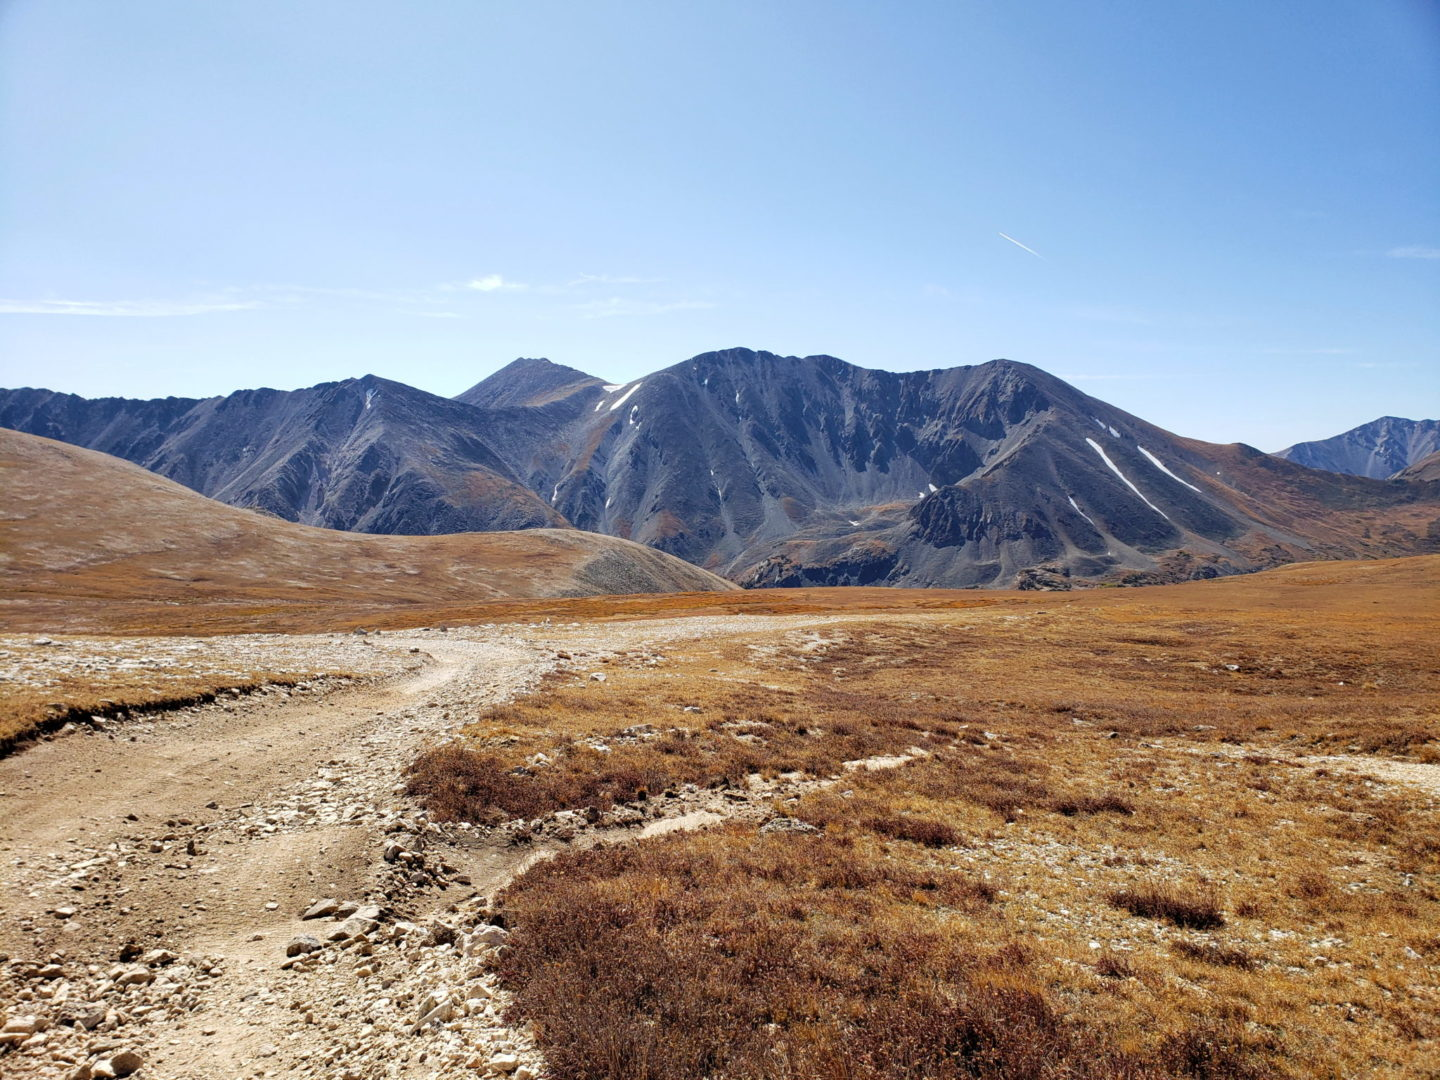 Mt Shavano (14,229') in back and Tabeguache (14,155') right of center